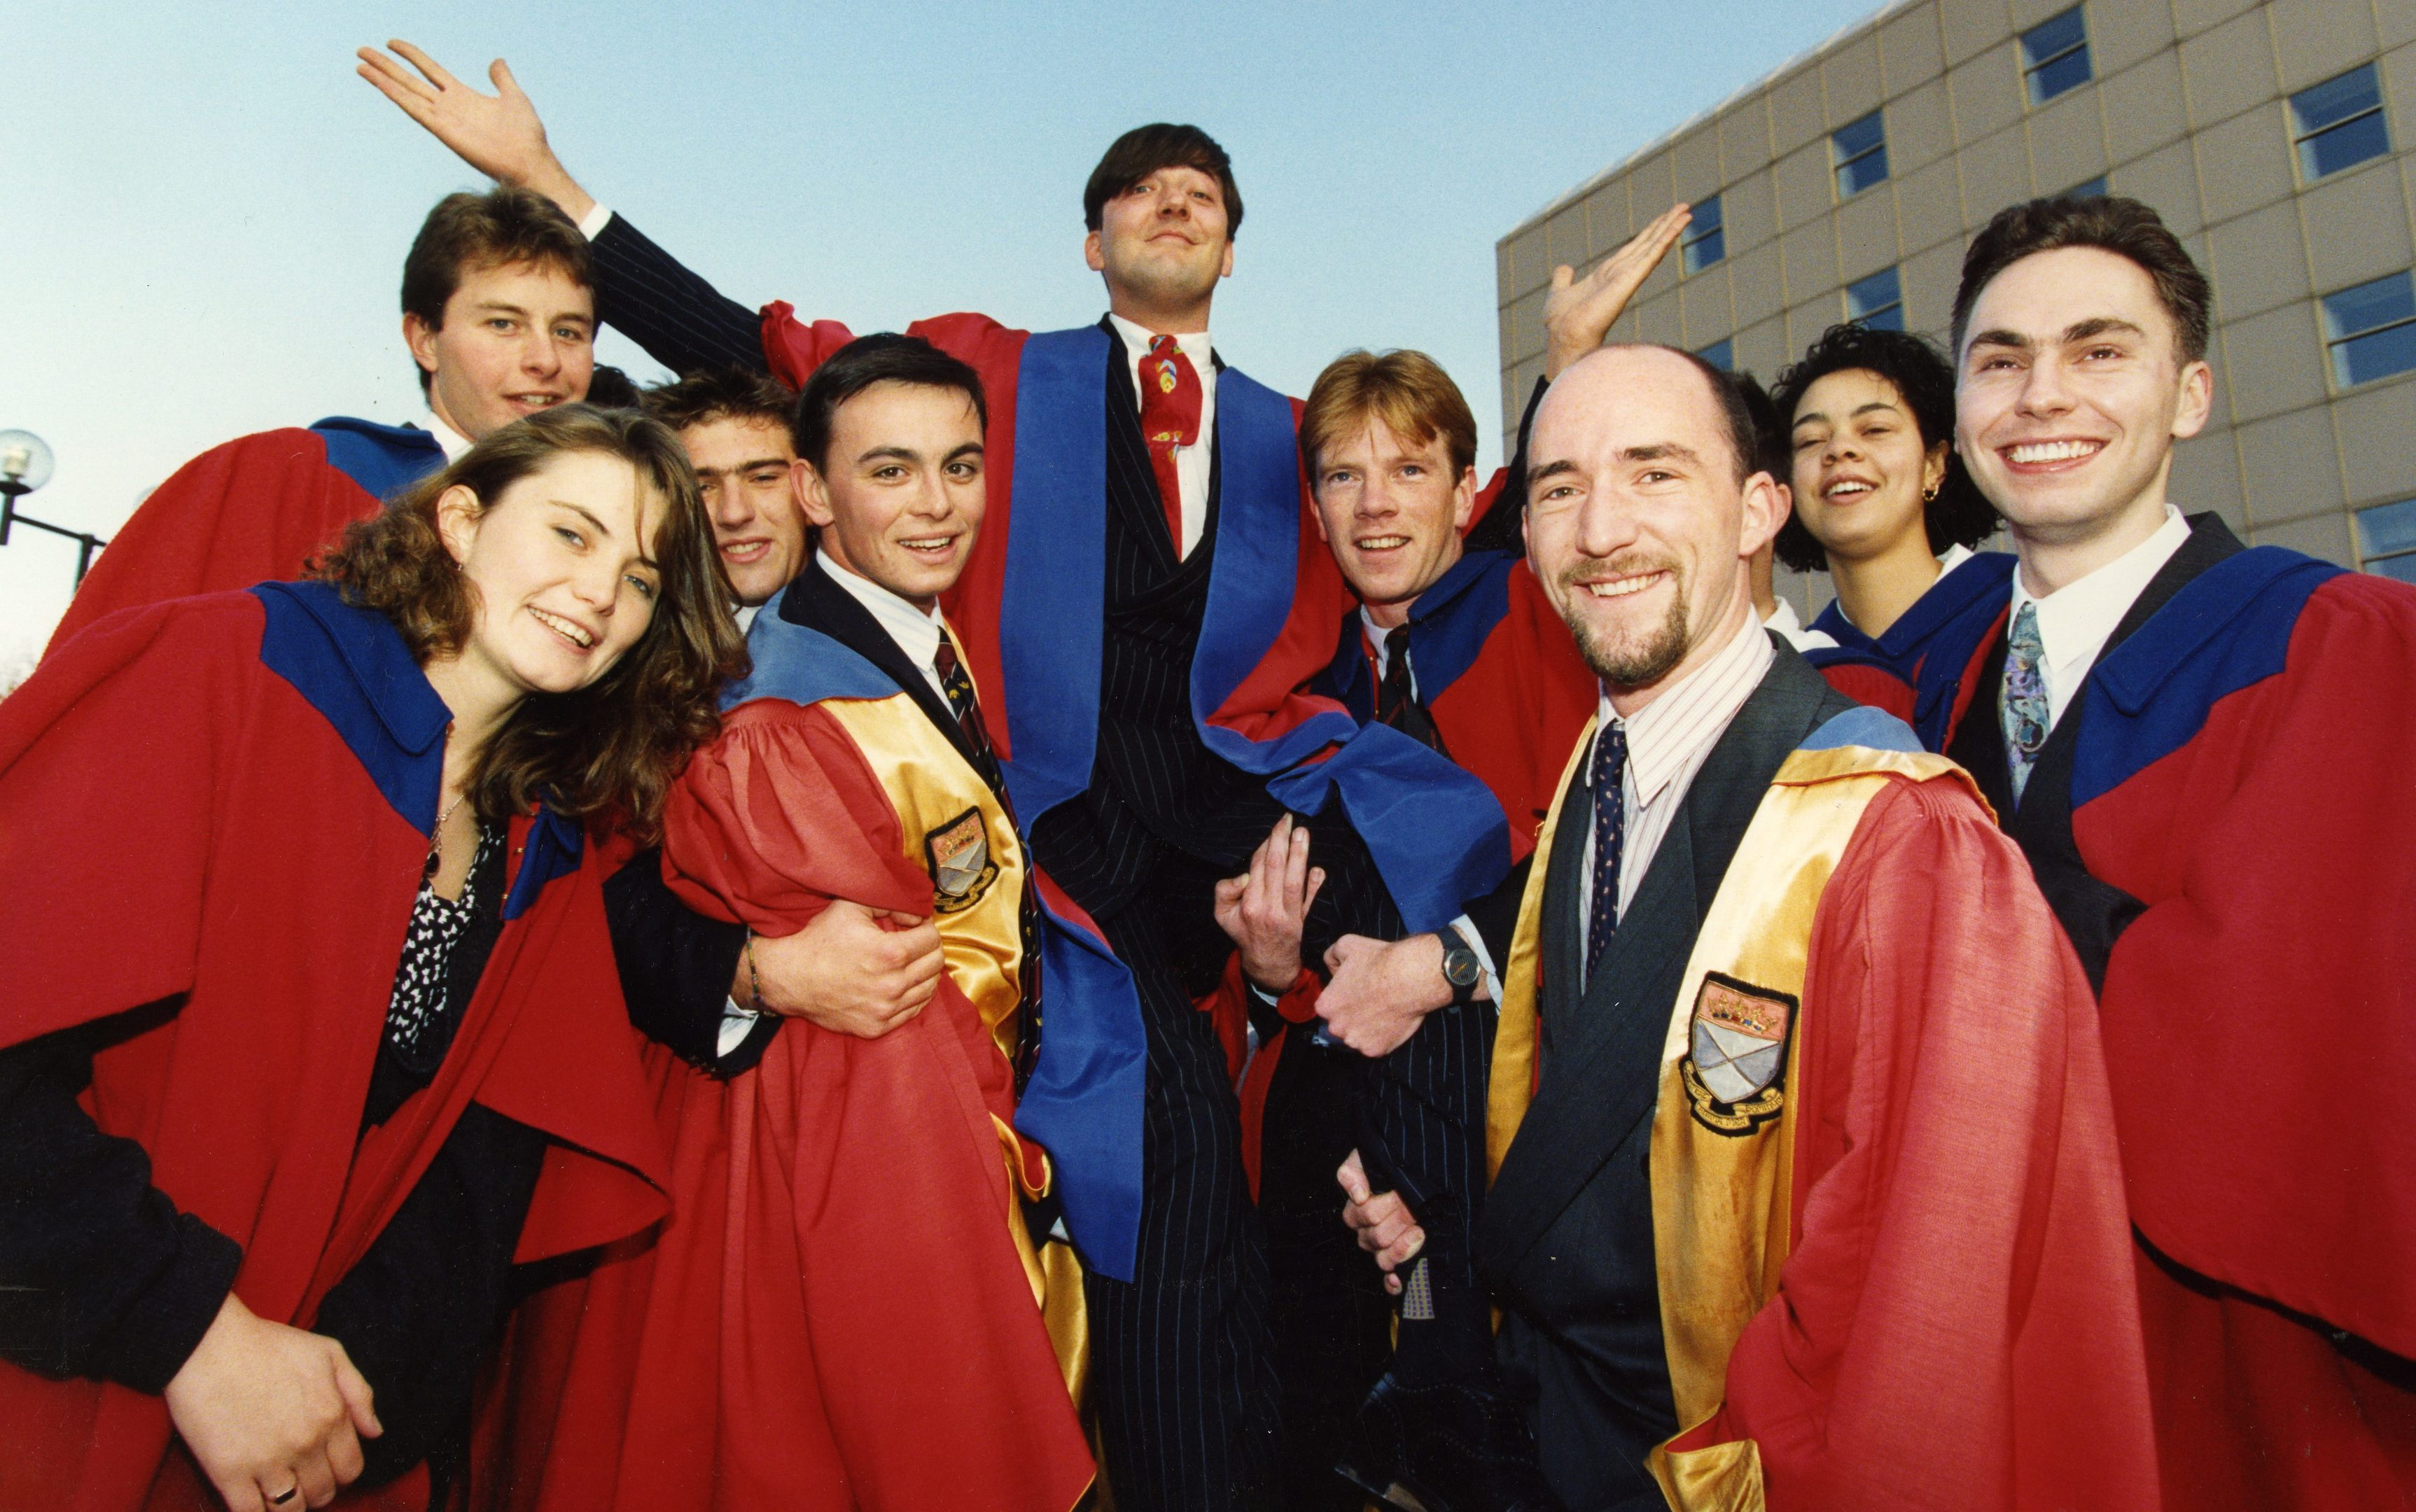 Stephen Fry becoming rector of Dundee University in 1992